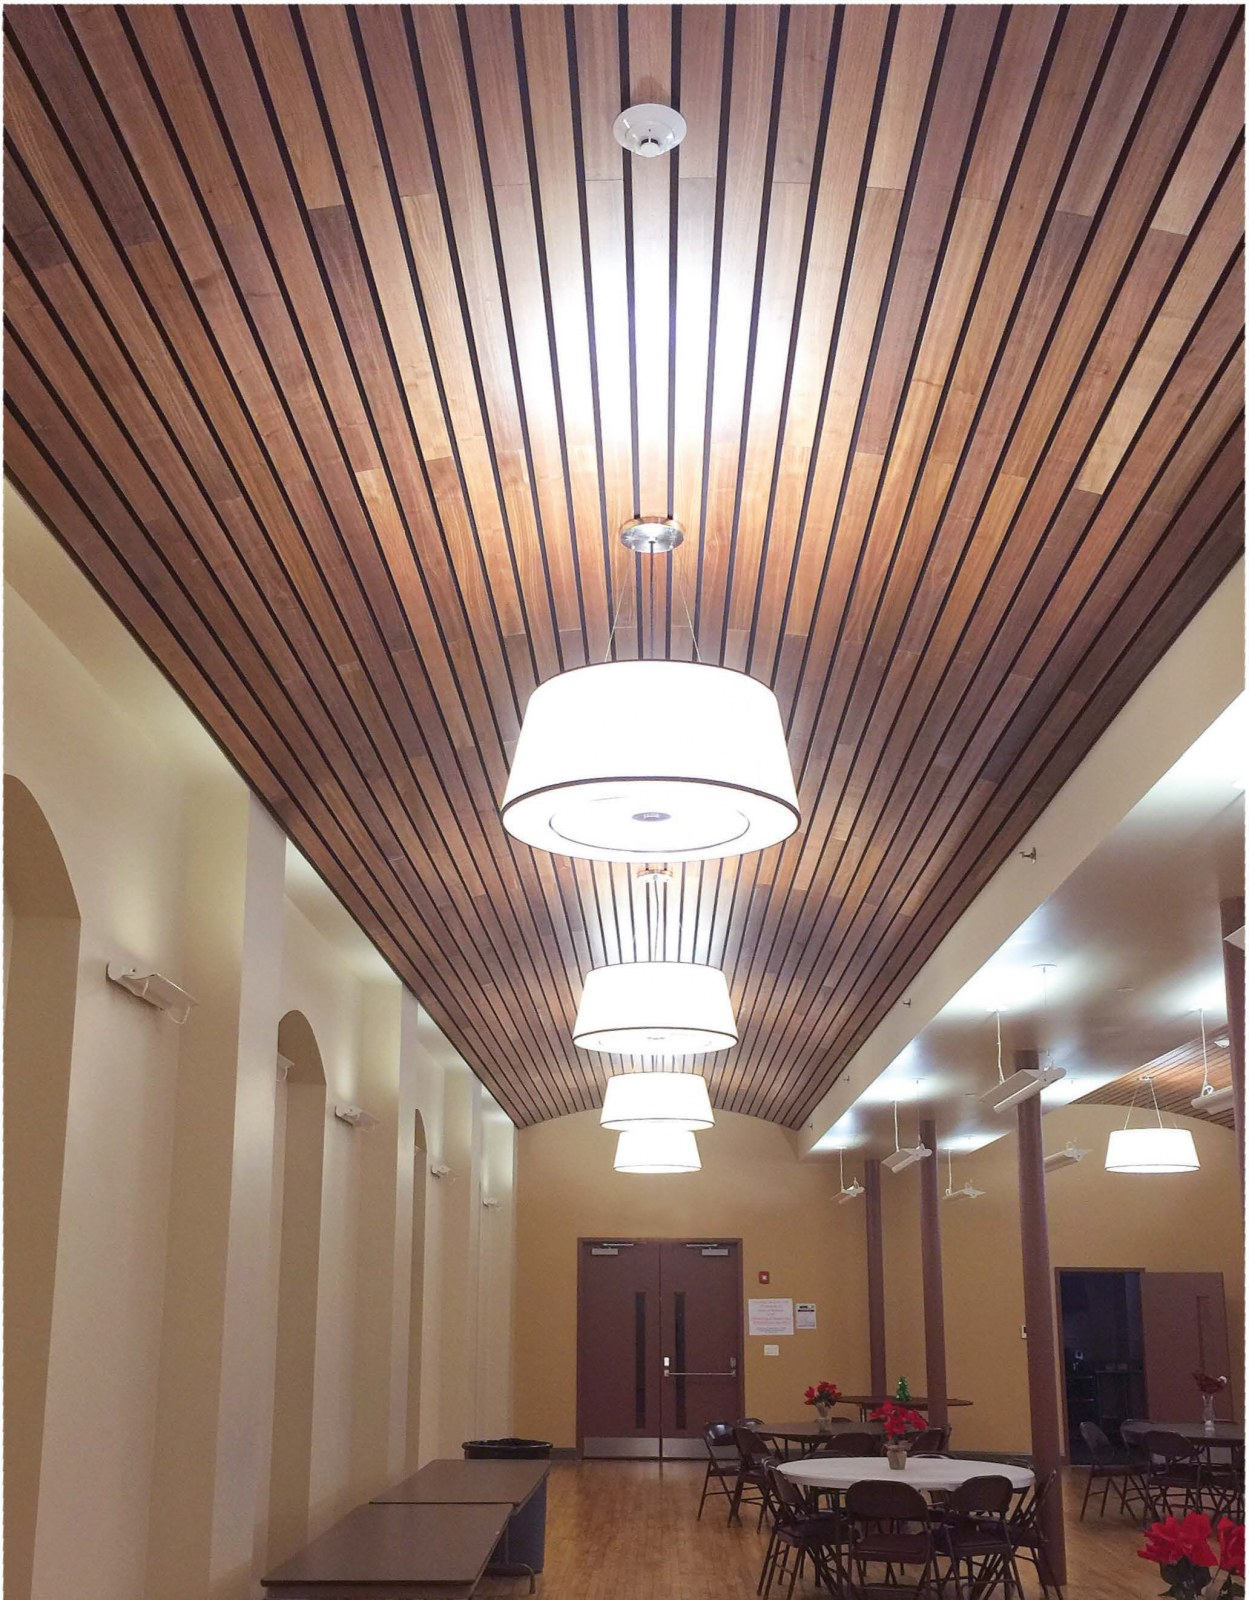 Linear Ceiling Solutions by ASI Architectural.